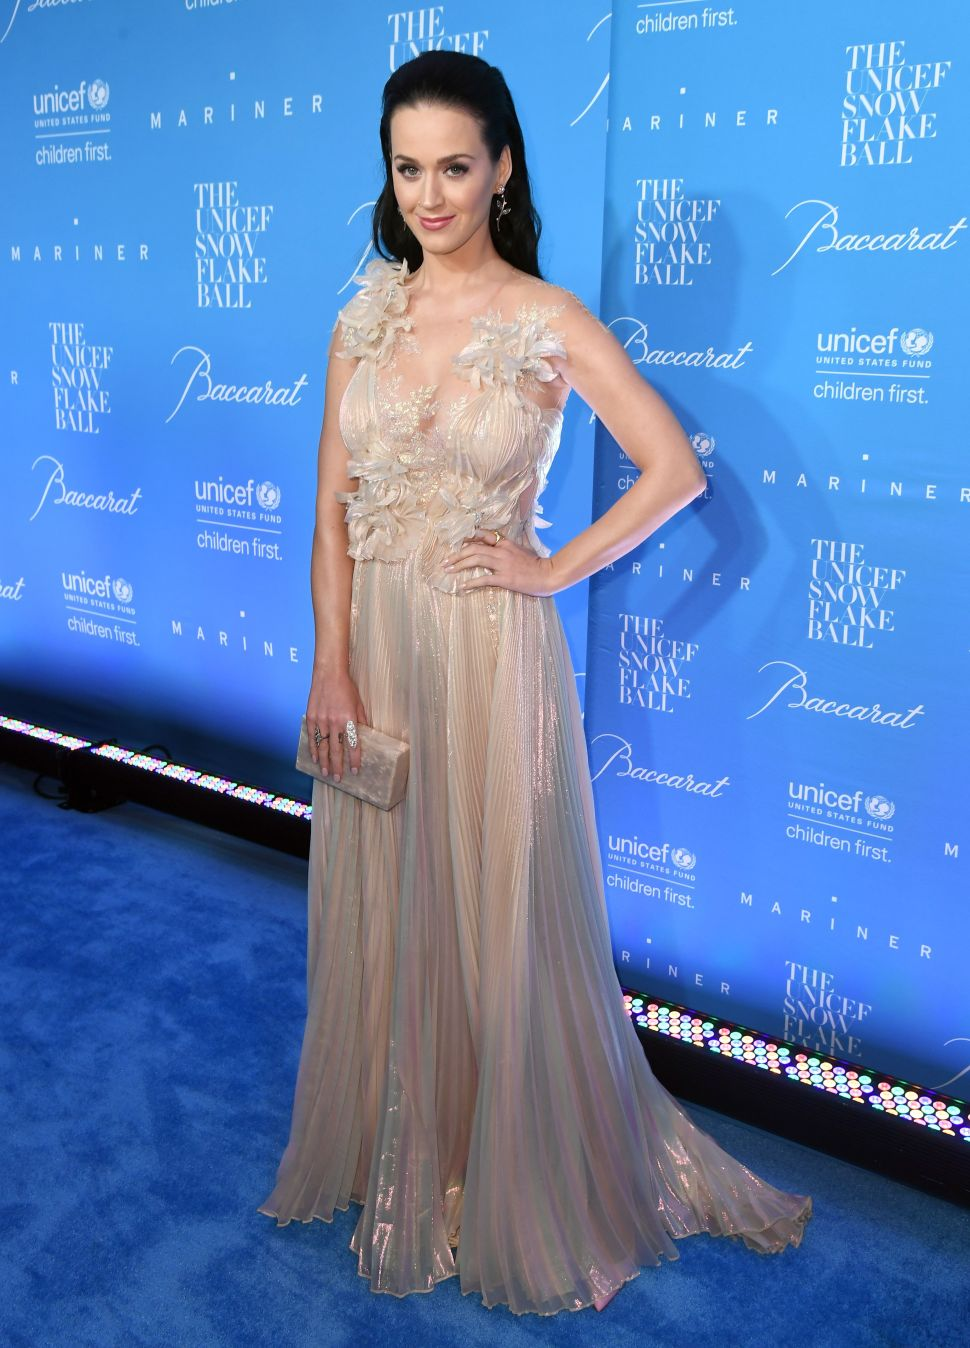 Katy Perry and Jennifer Lawrence Make Ethereal Dressing a Trend